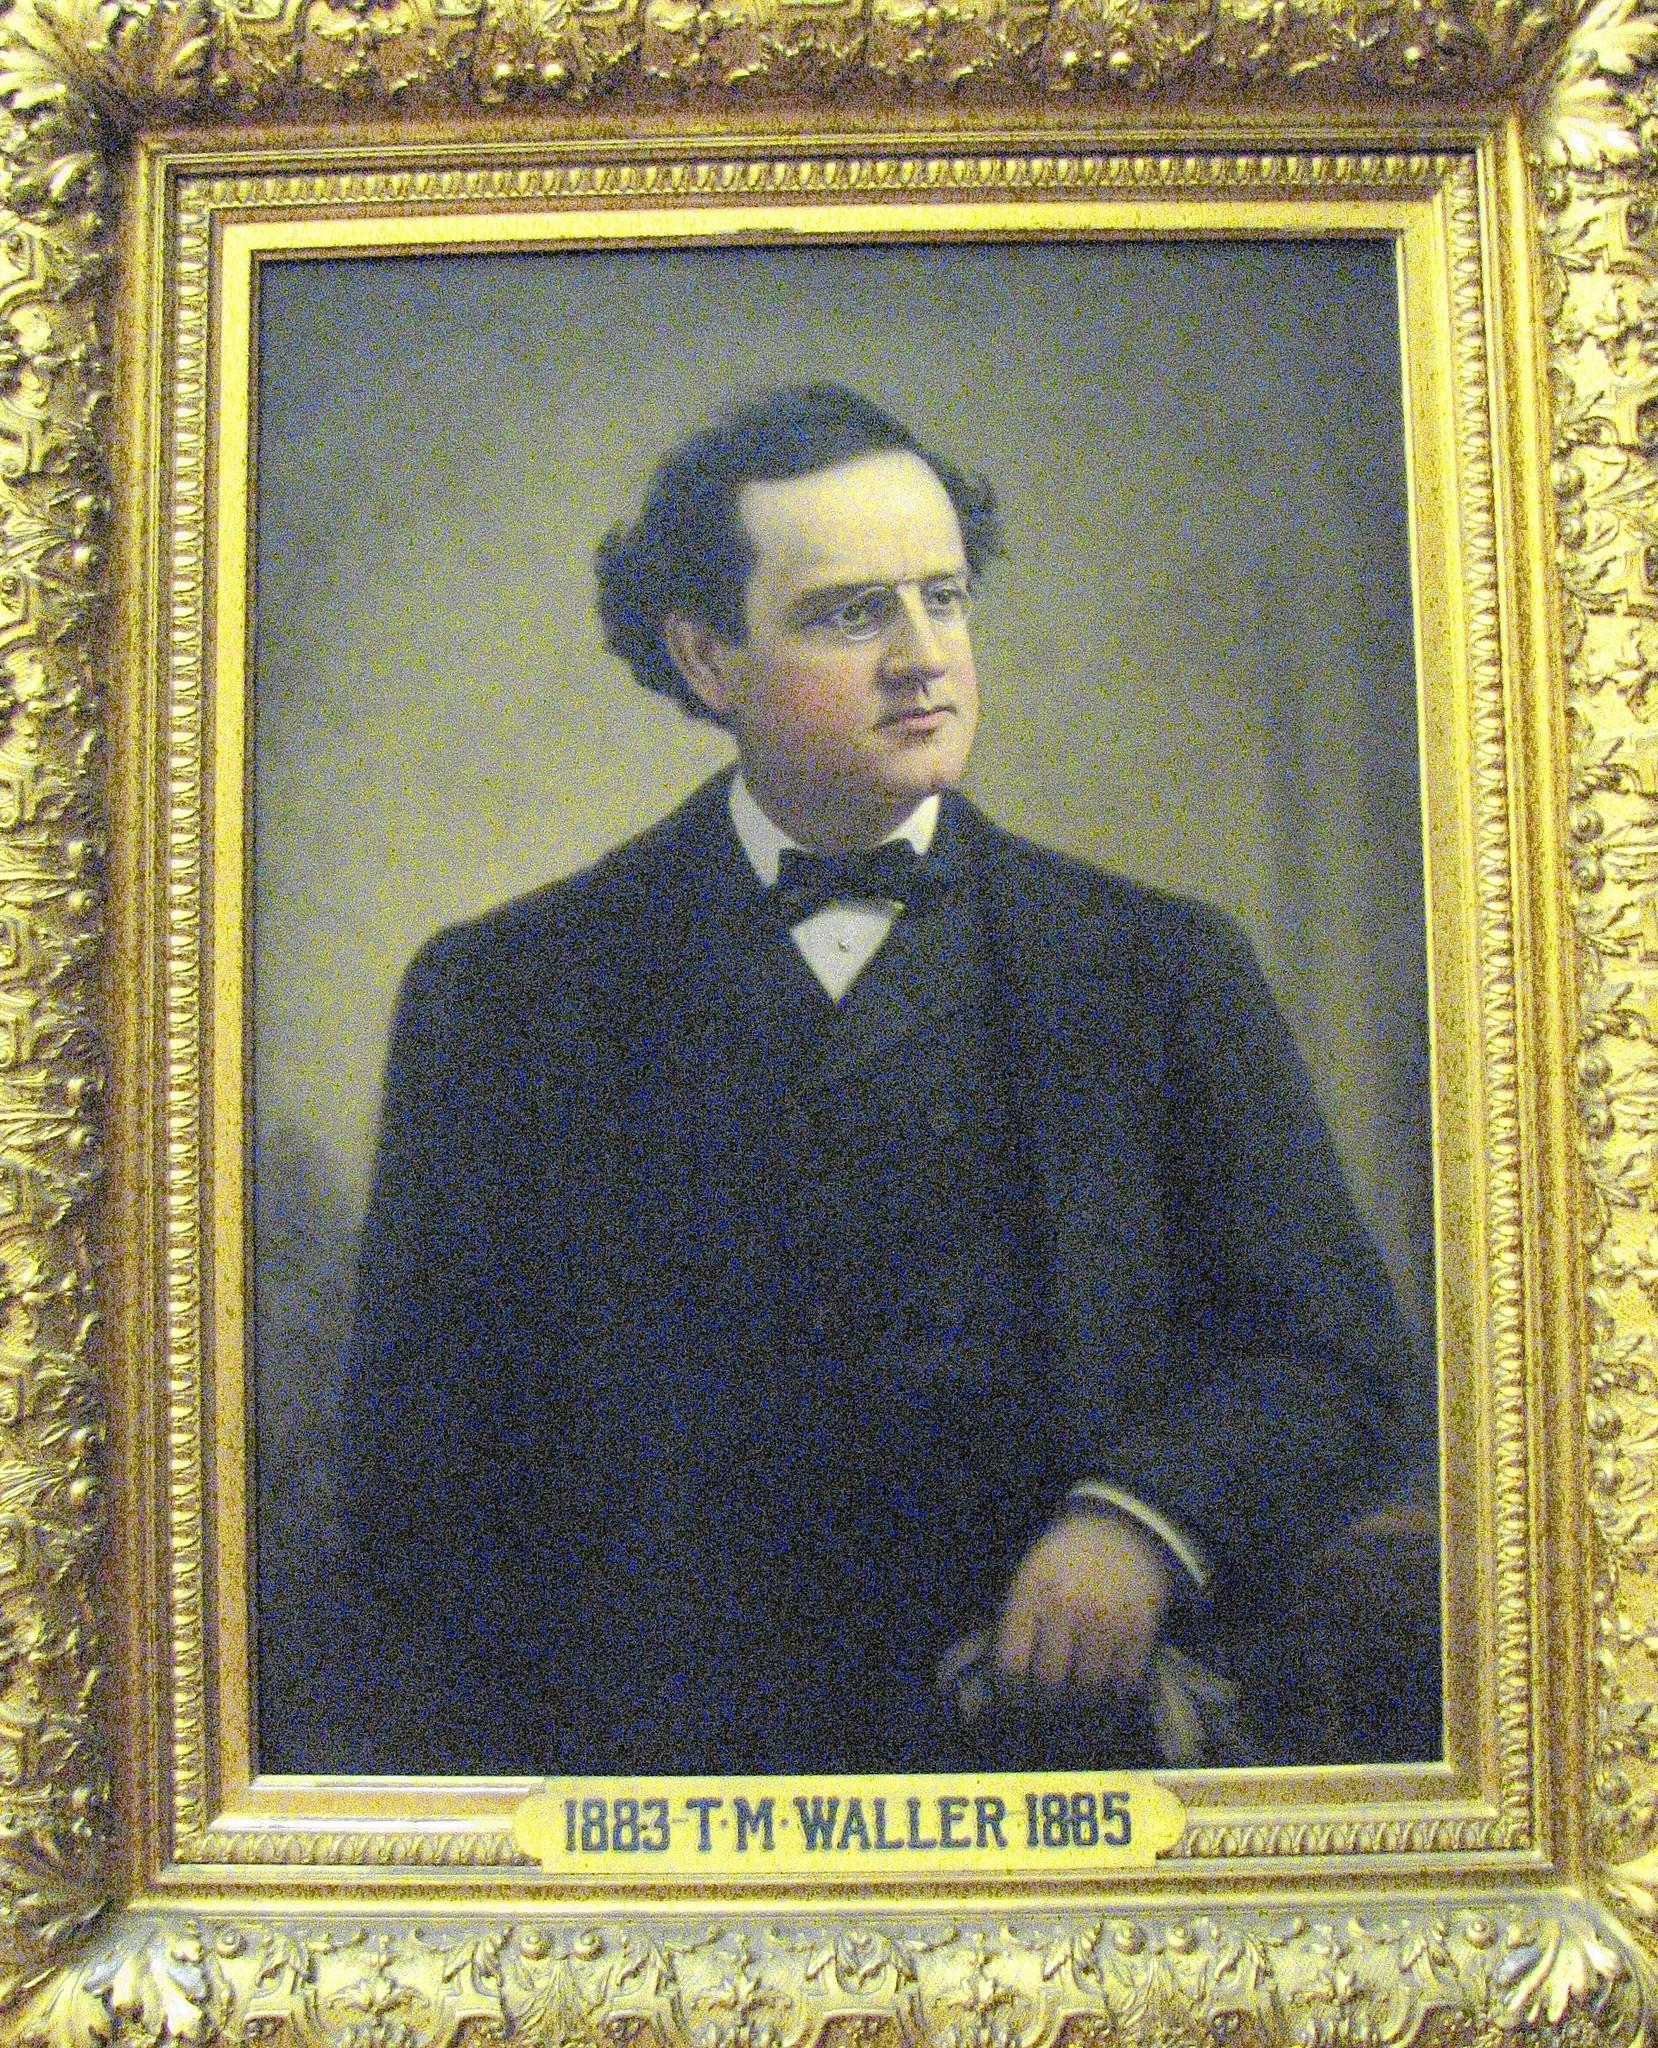 Connecticut's first governor of Irish descent, Thomas M. Waller of New London, held office from January 1883 to January 1885.